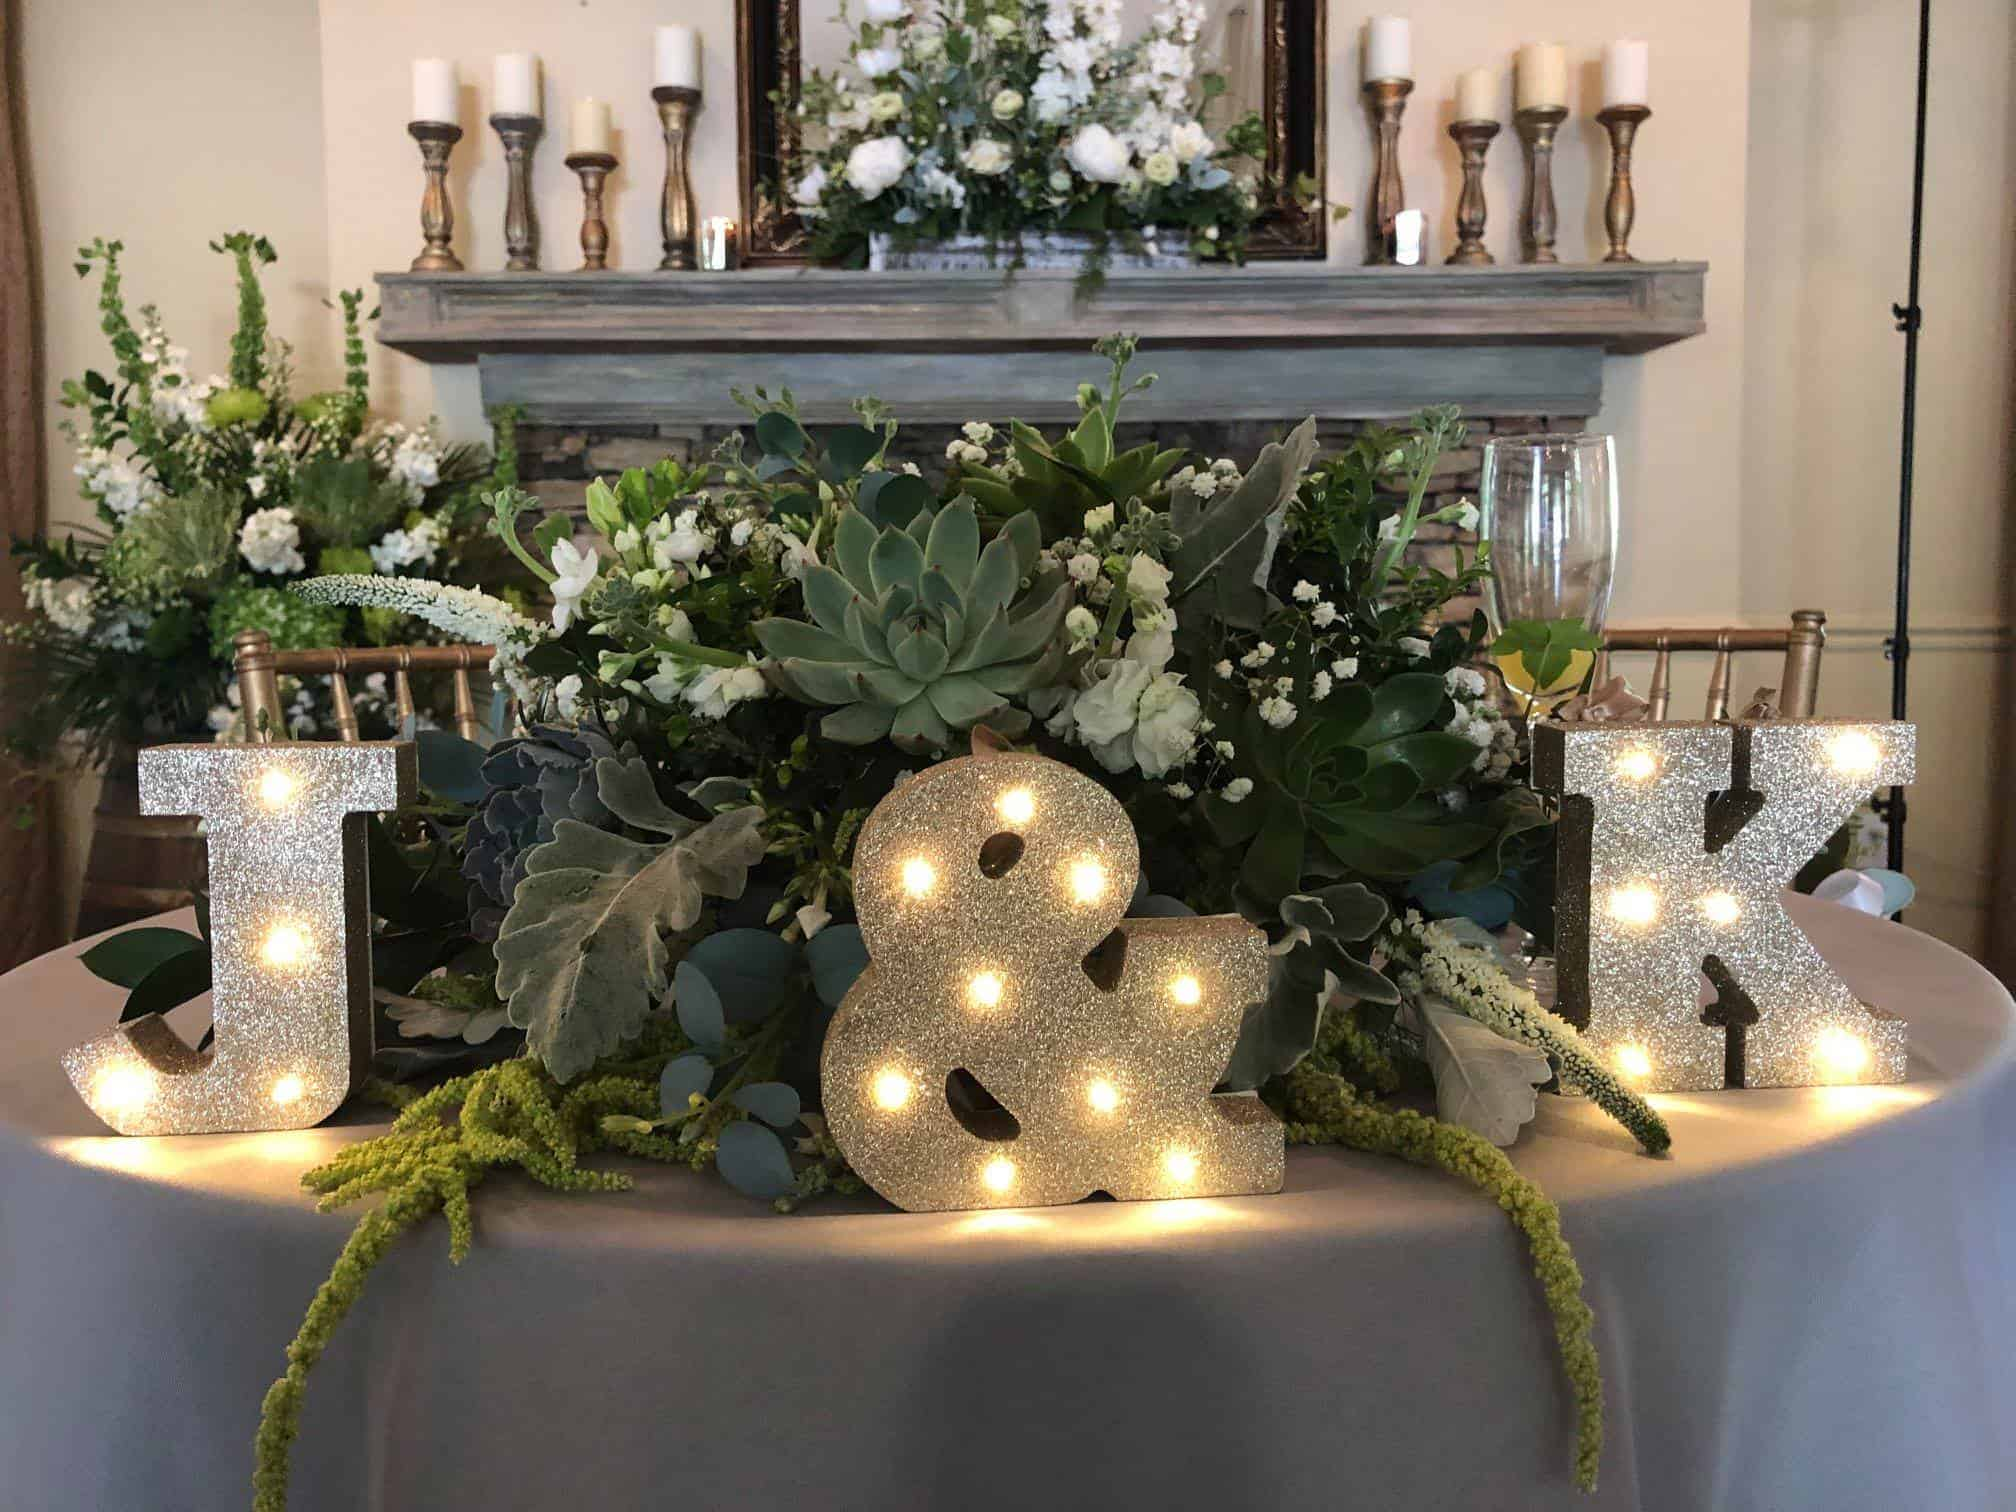 Sweetheart table with large floral arrangement in green and white with large initals of bride and groom lit up